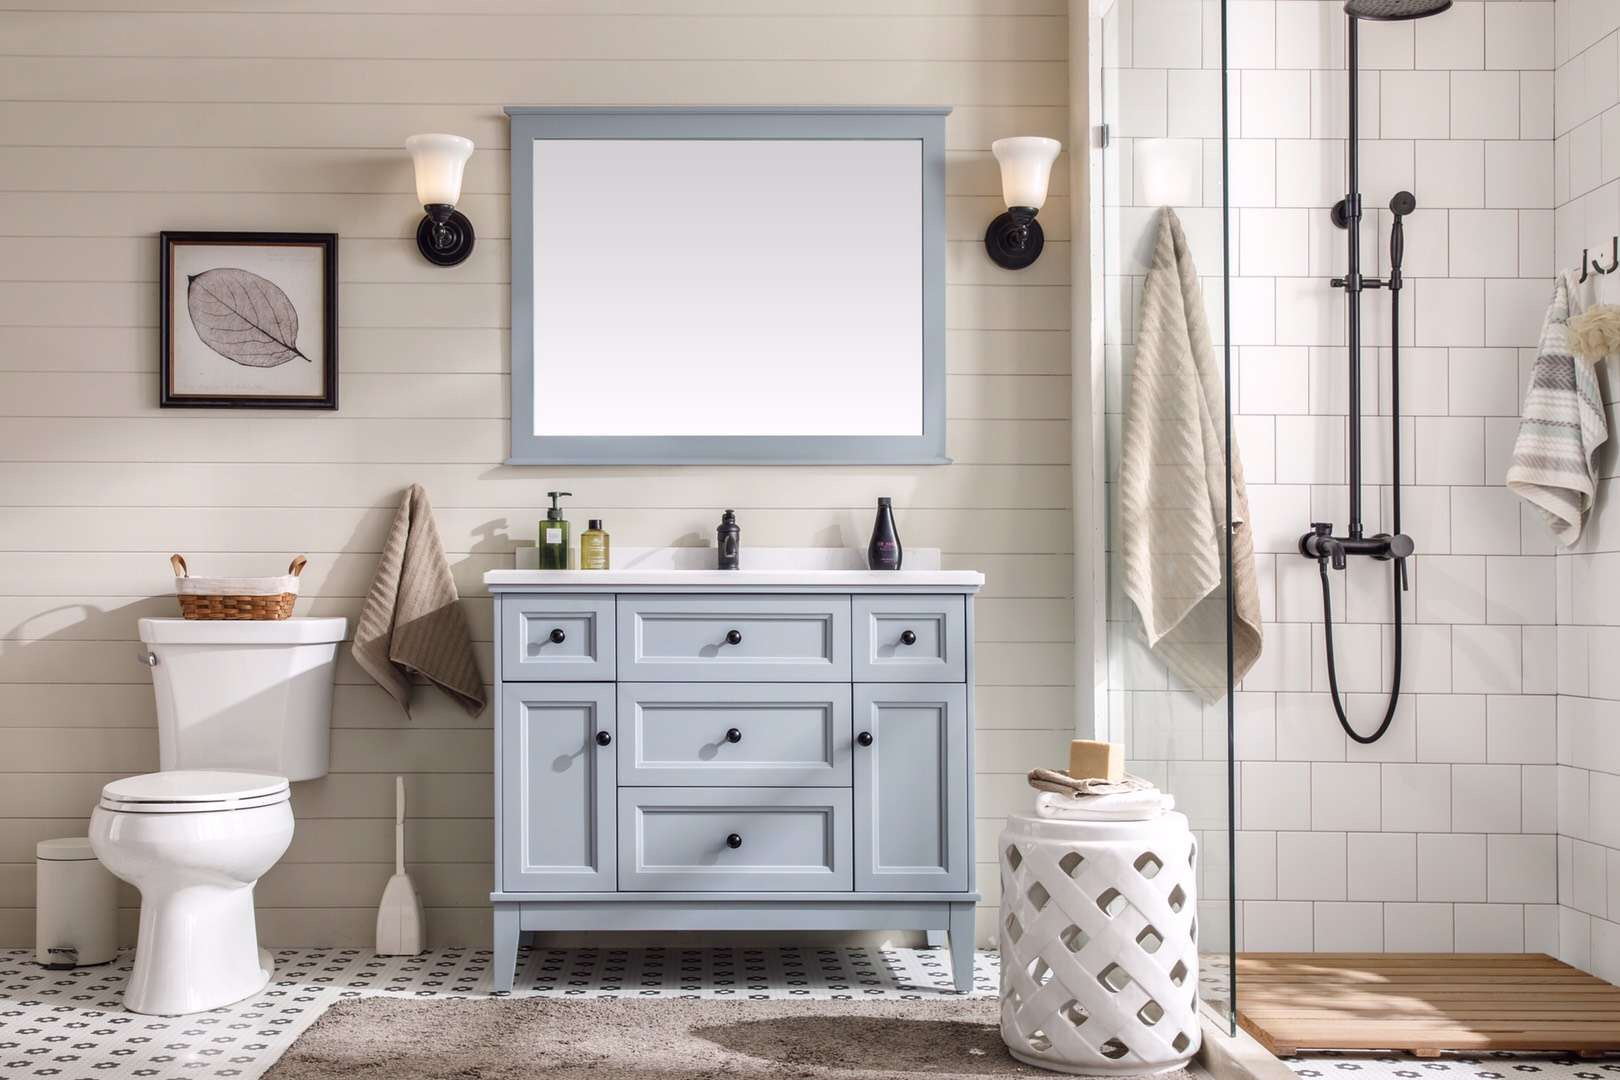 40inch Light Grey Bathroom Vanity Cabinet Combo With More Drawers